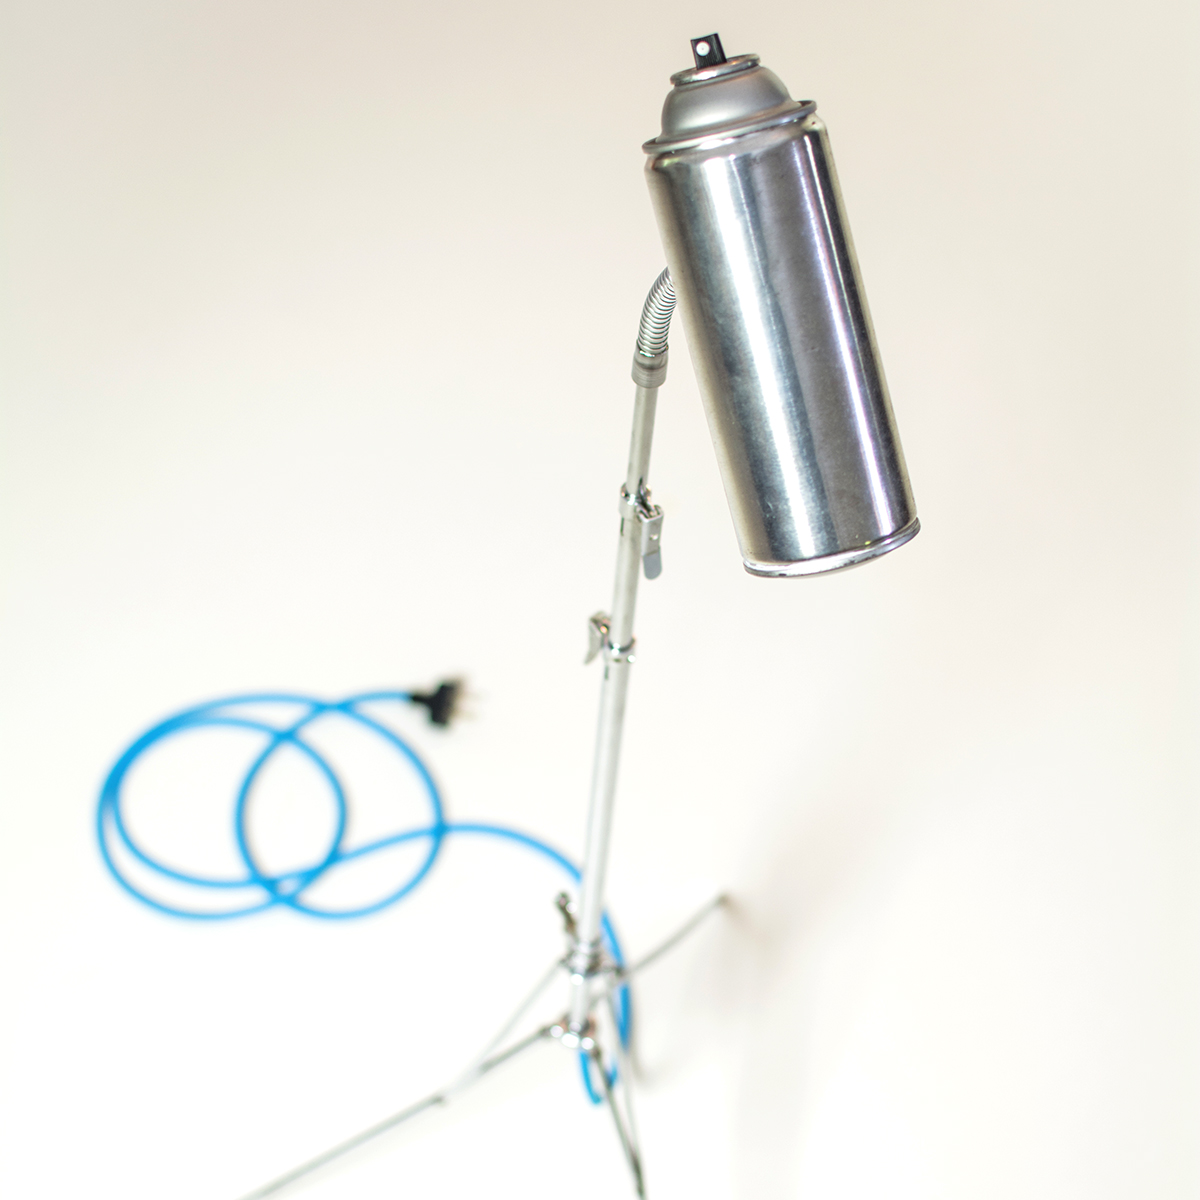 Spray Paint Can Lamp by Constructed Matter